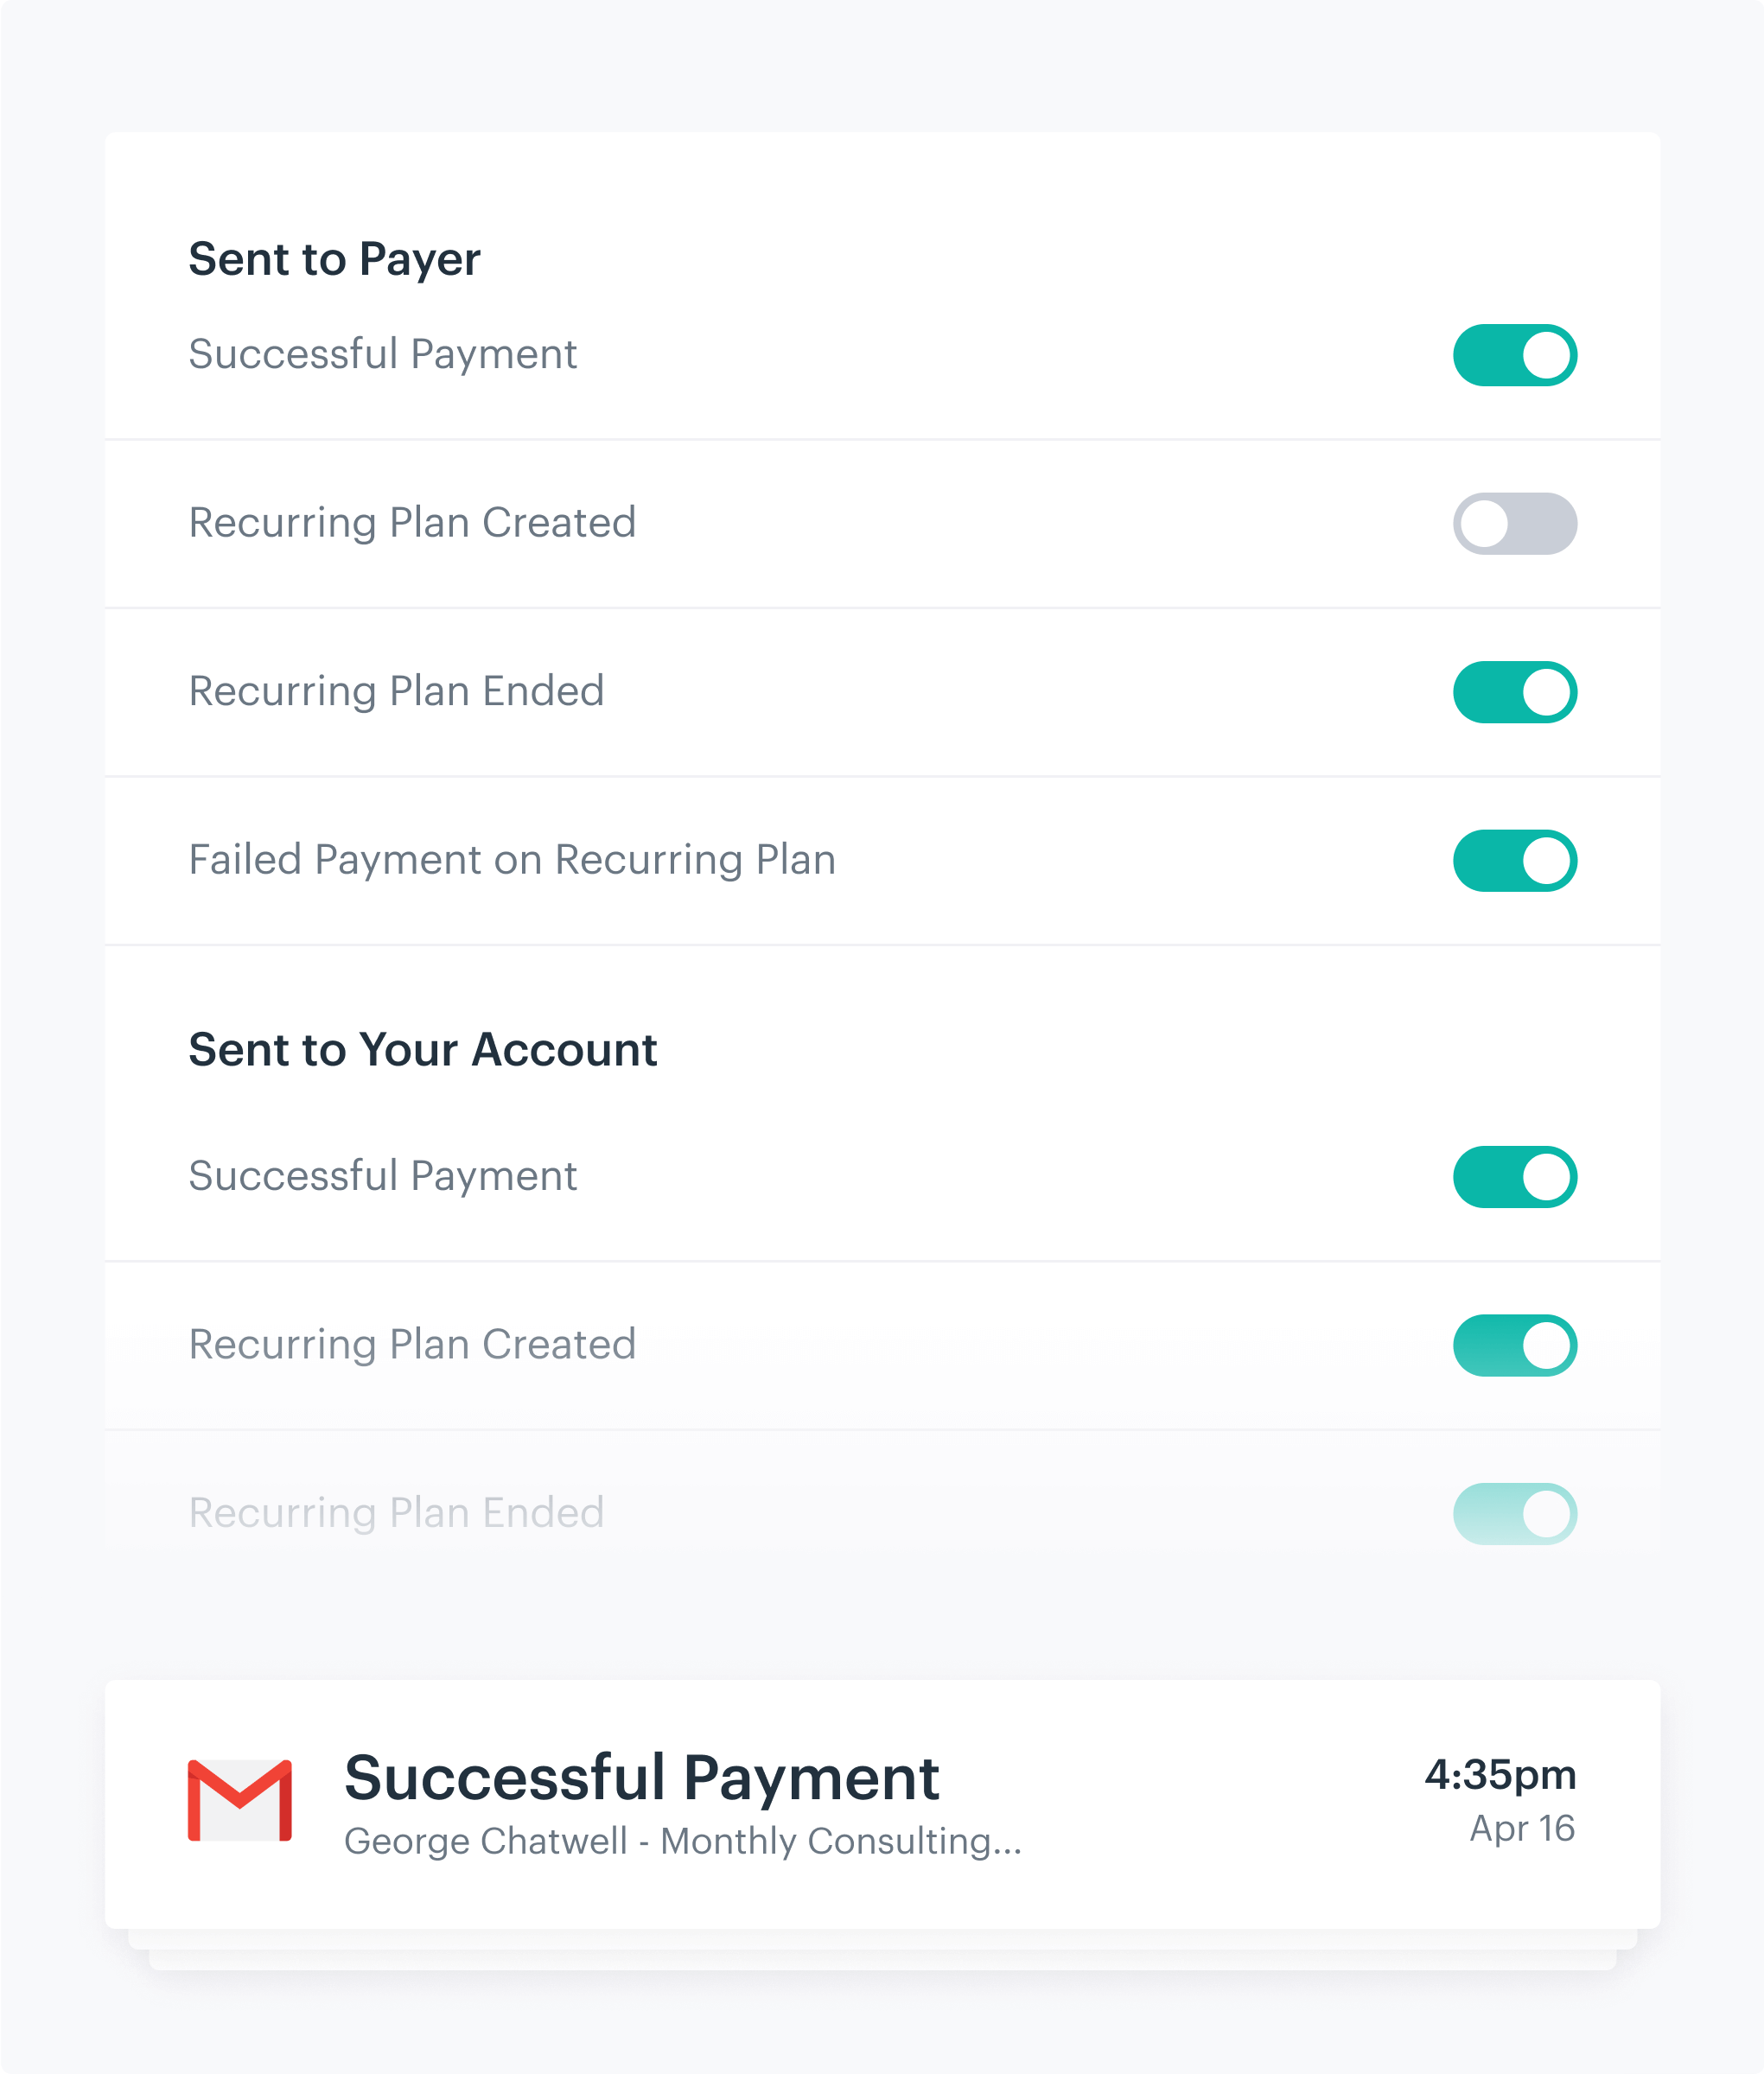 List of email notifications and toggles for turning them off and on